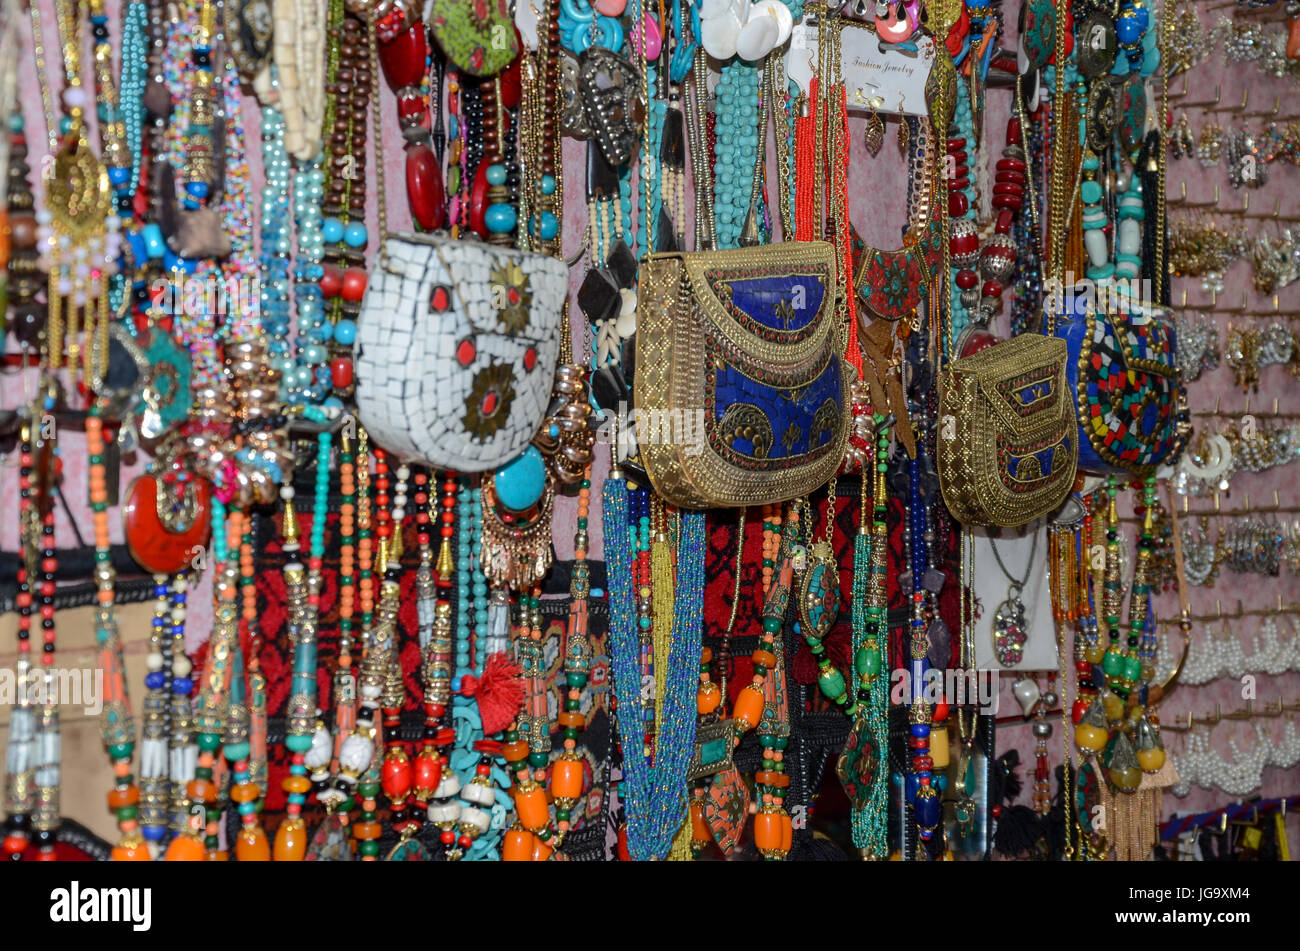 Pakistani Handicrafts Stock Photo 147735956 Alamy